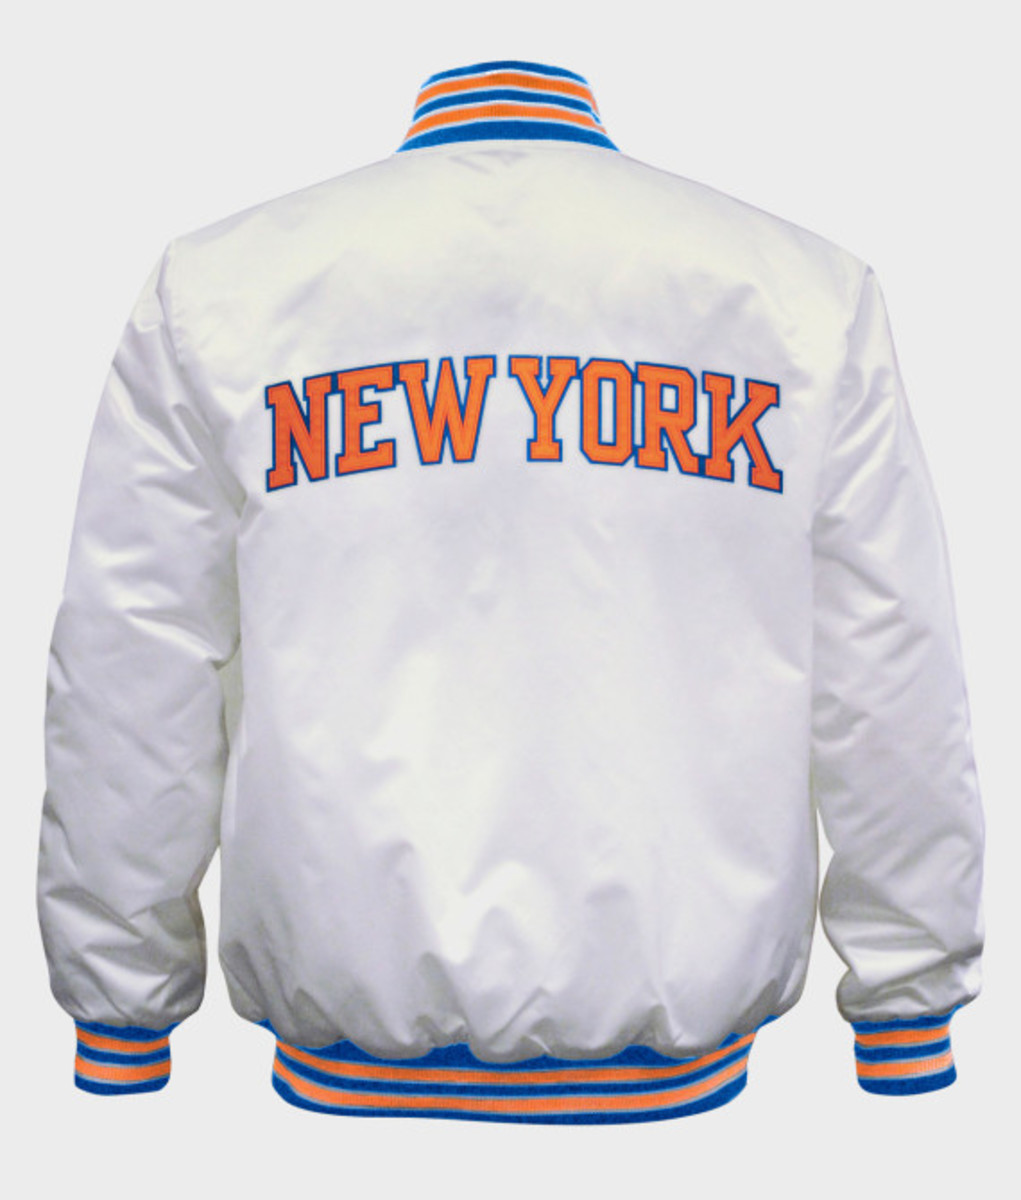 Starter – Apr 12, 2016 & Brooklyn Nets Limited Edition Satin Jacket in Christmas White - 2